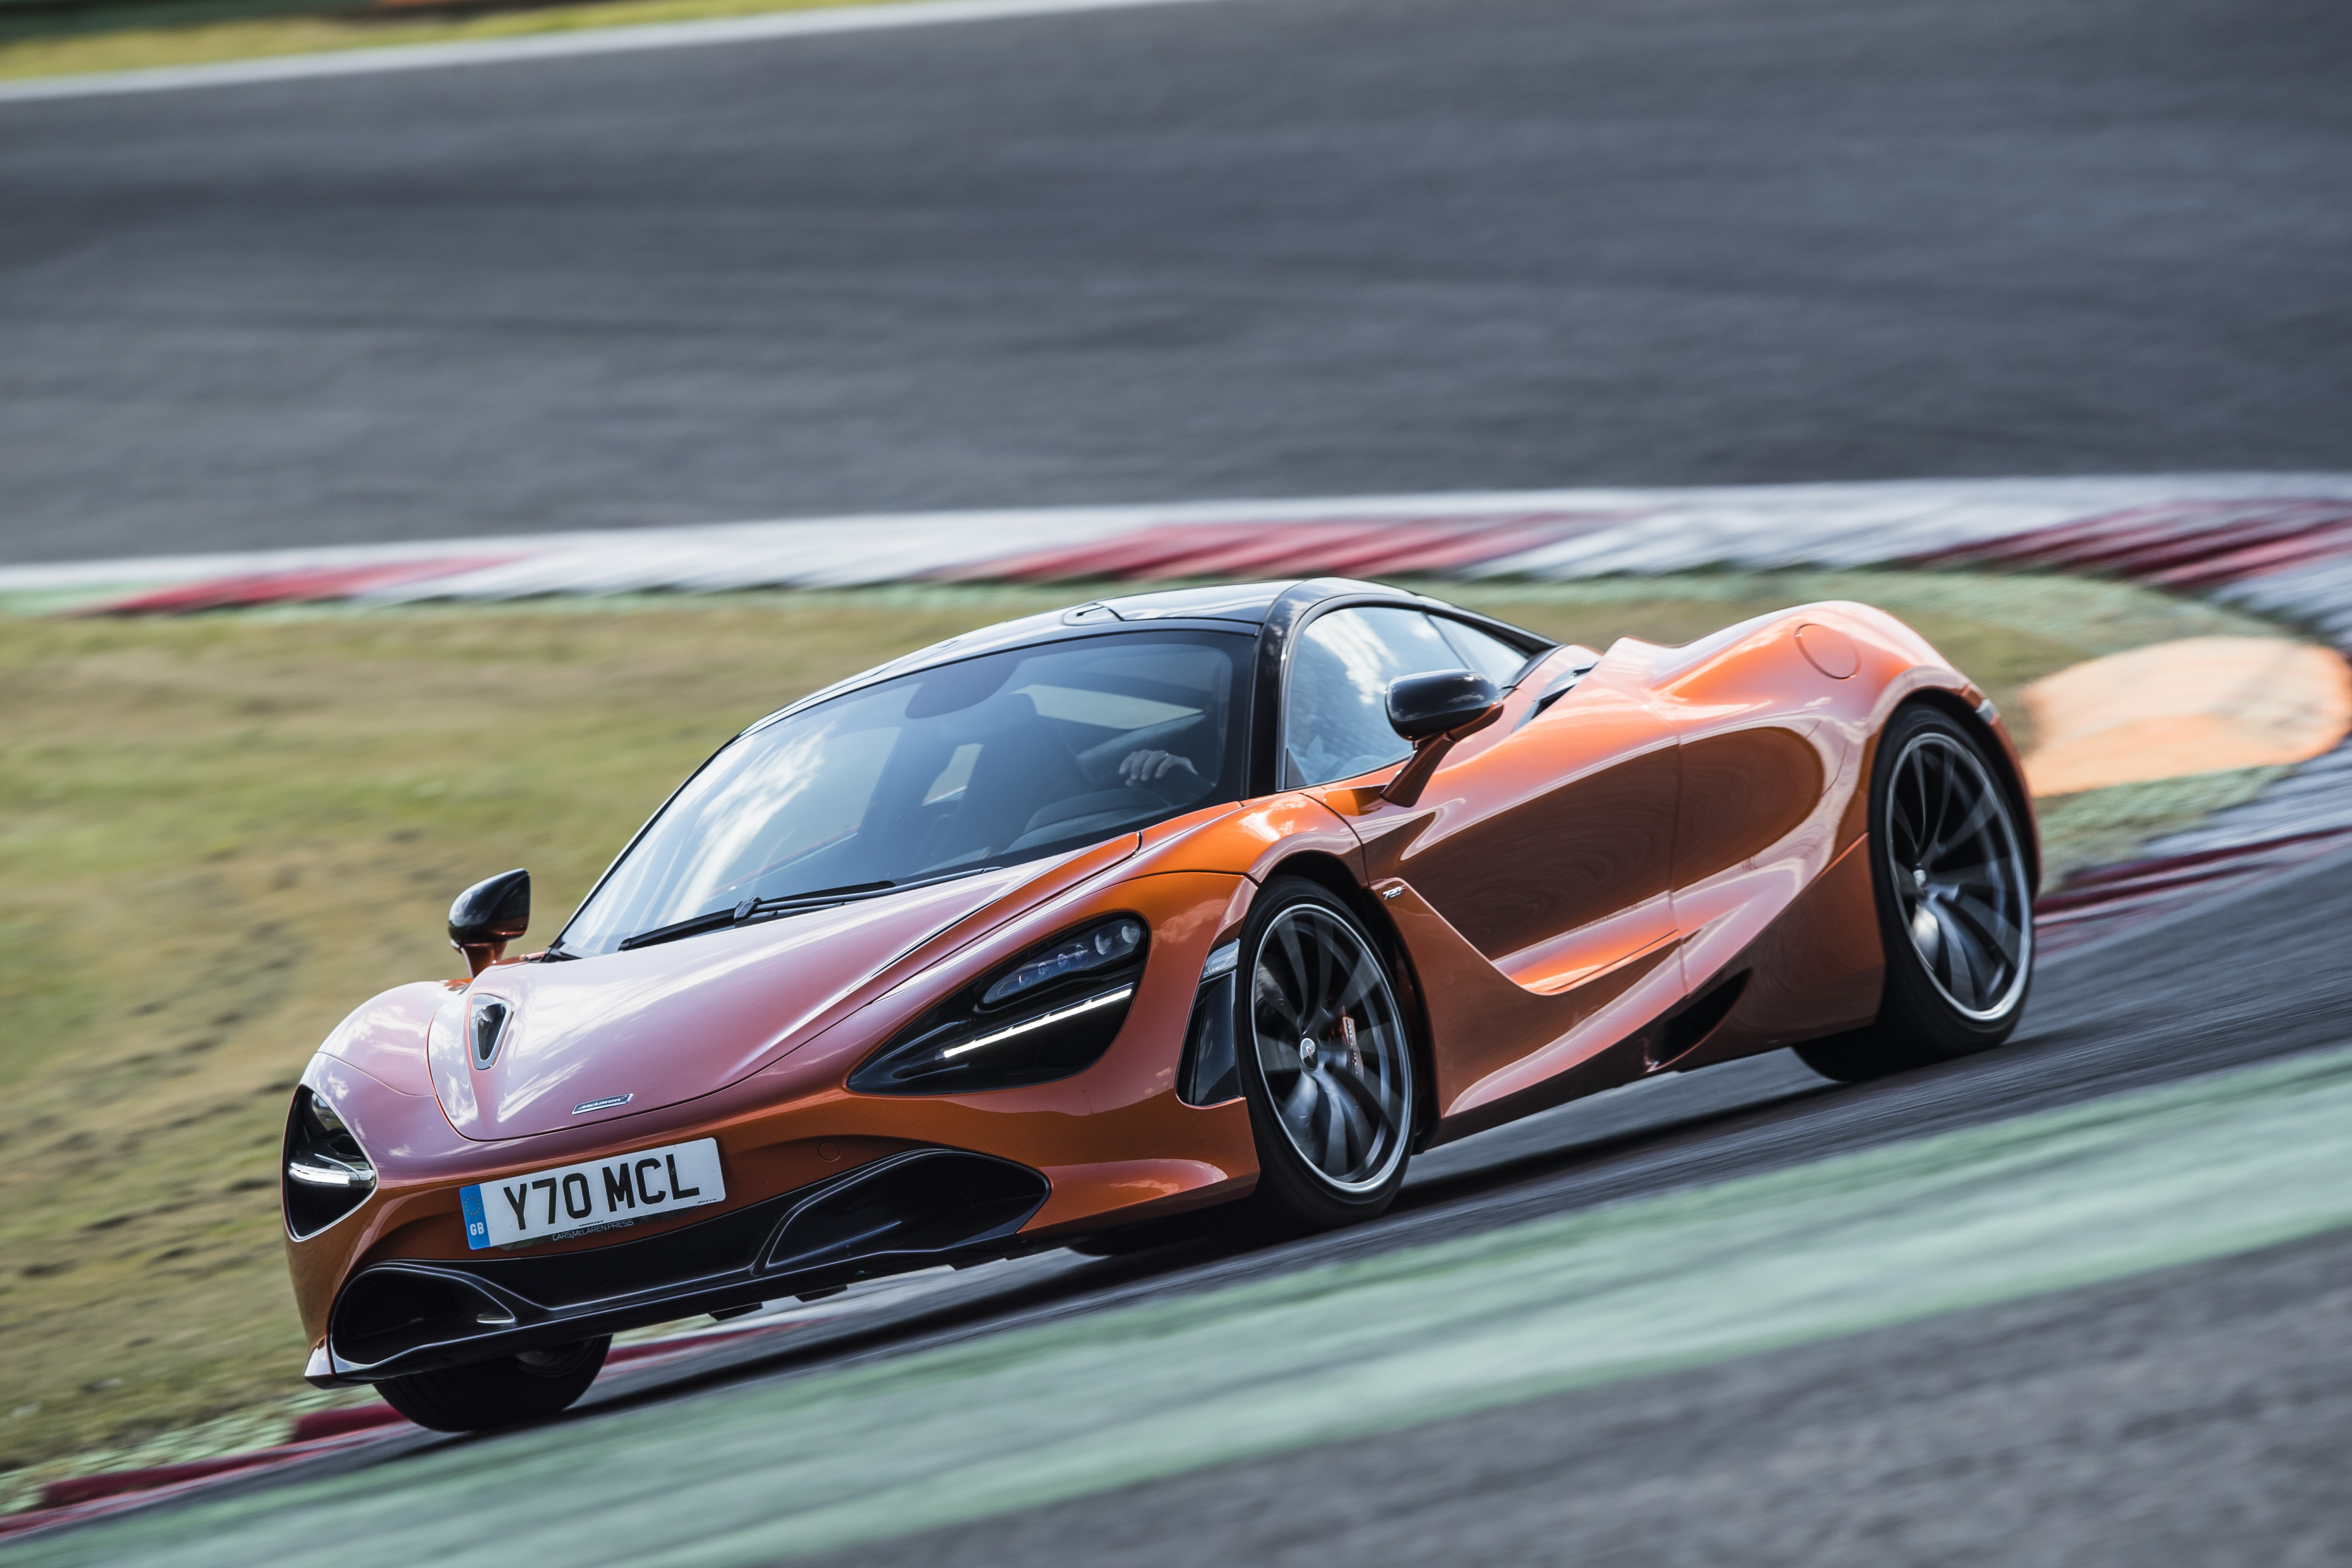 China S Young Tech Millionaires Just The Right Demographic For British Supercar Maker Mclaren As It Zips Past Rivals